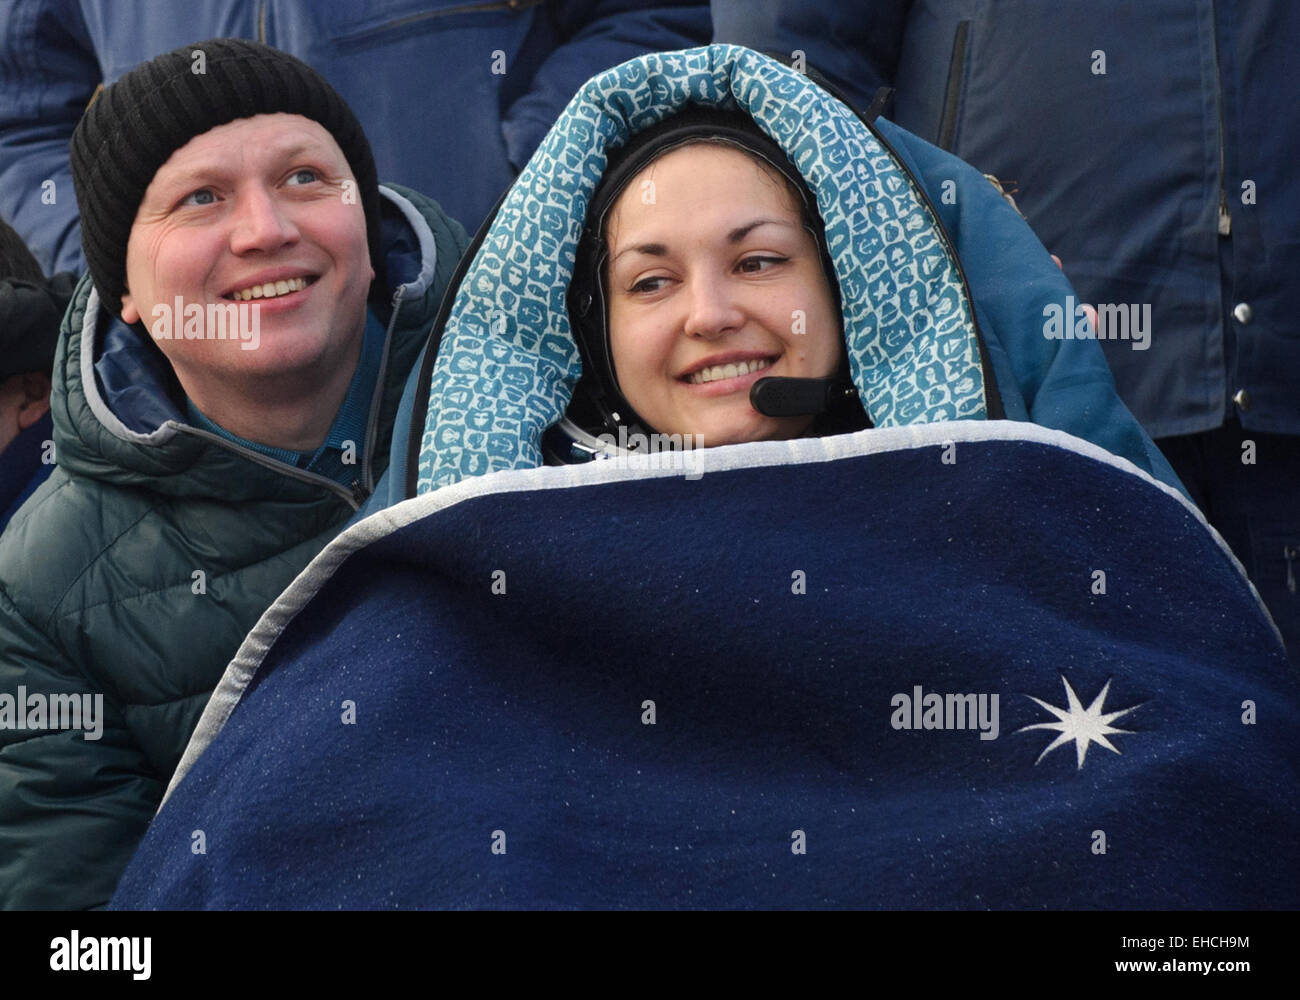 Kazakhstan. 12th March, 2015. ISS Expedition 41/42 crew member, Russia's cosmonaut Yelena Serova (R) seen after - Stock Image